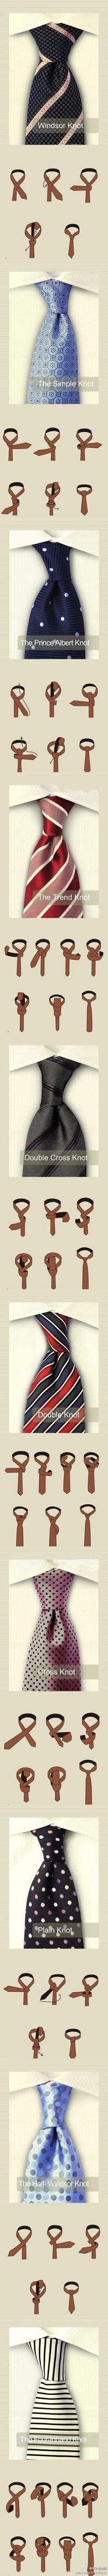 I don't know why, but I think every woman should learn how to tie a Tie